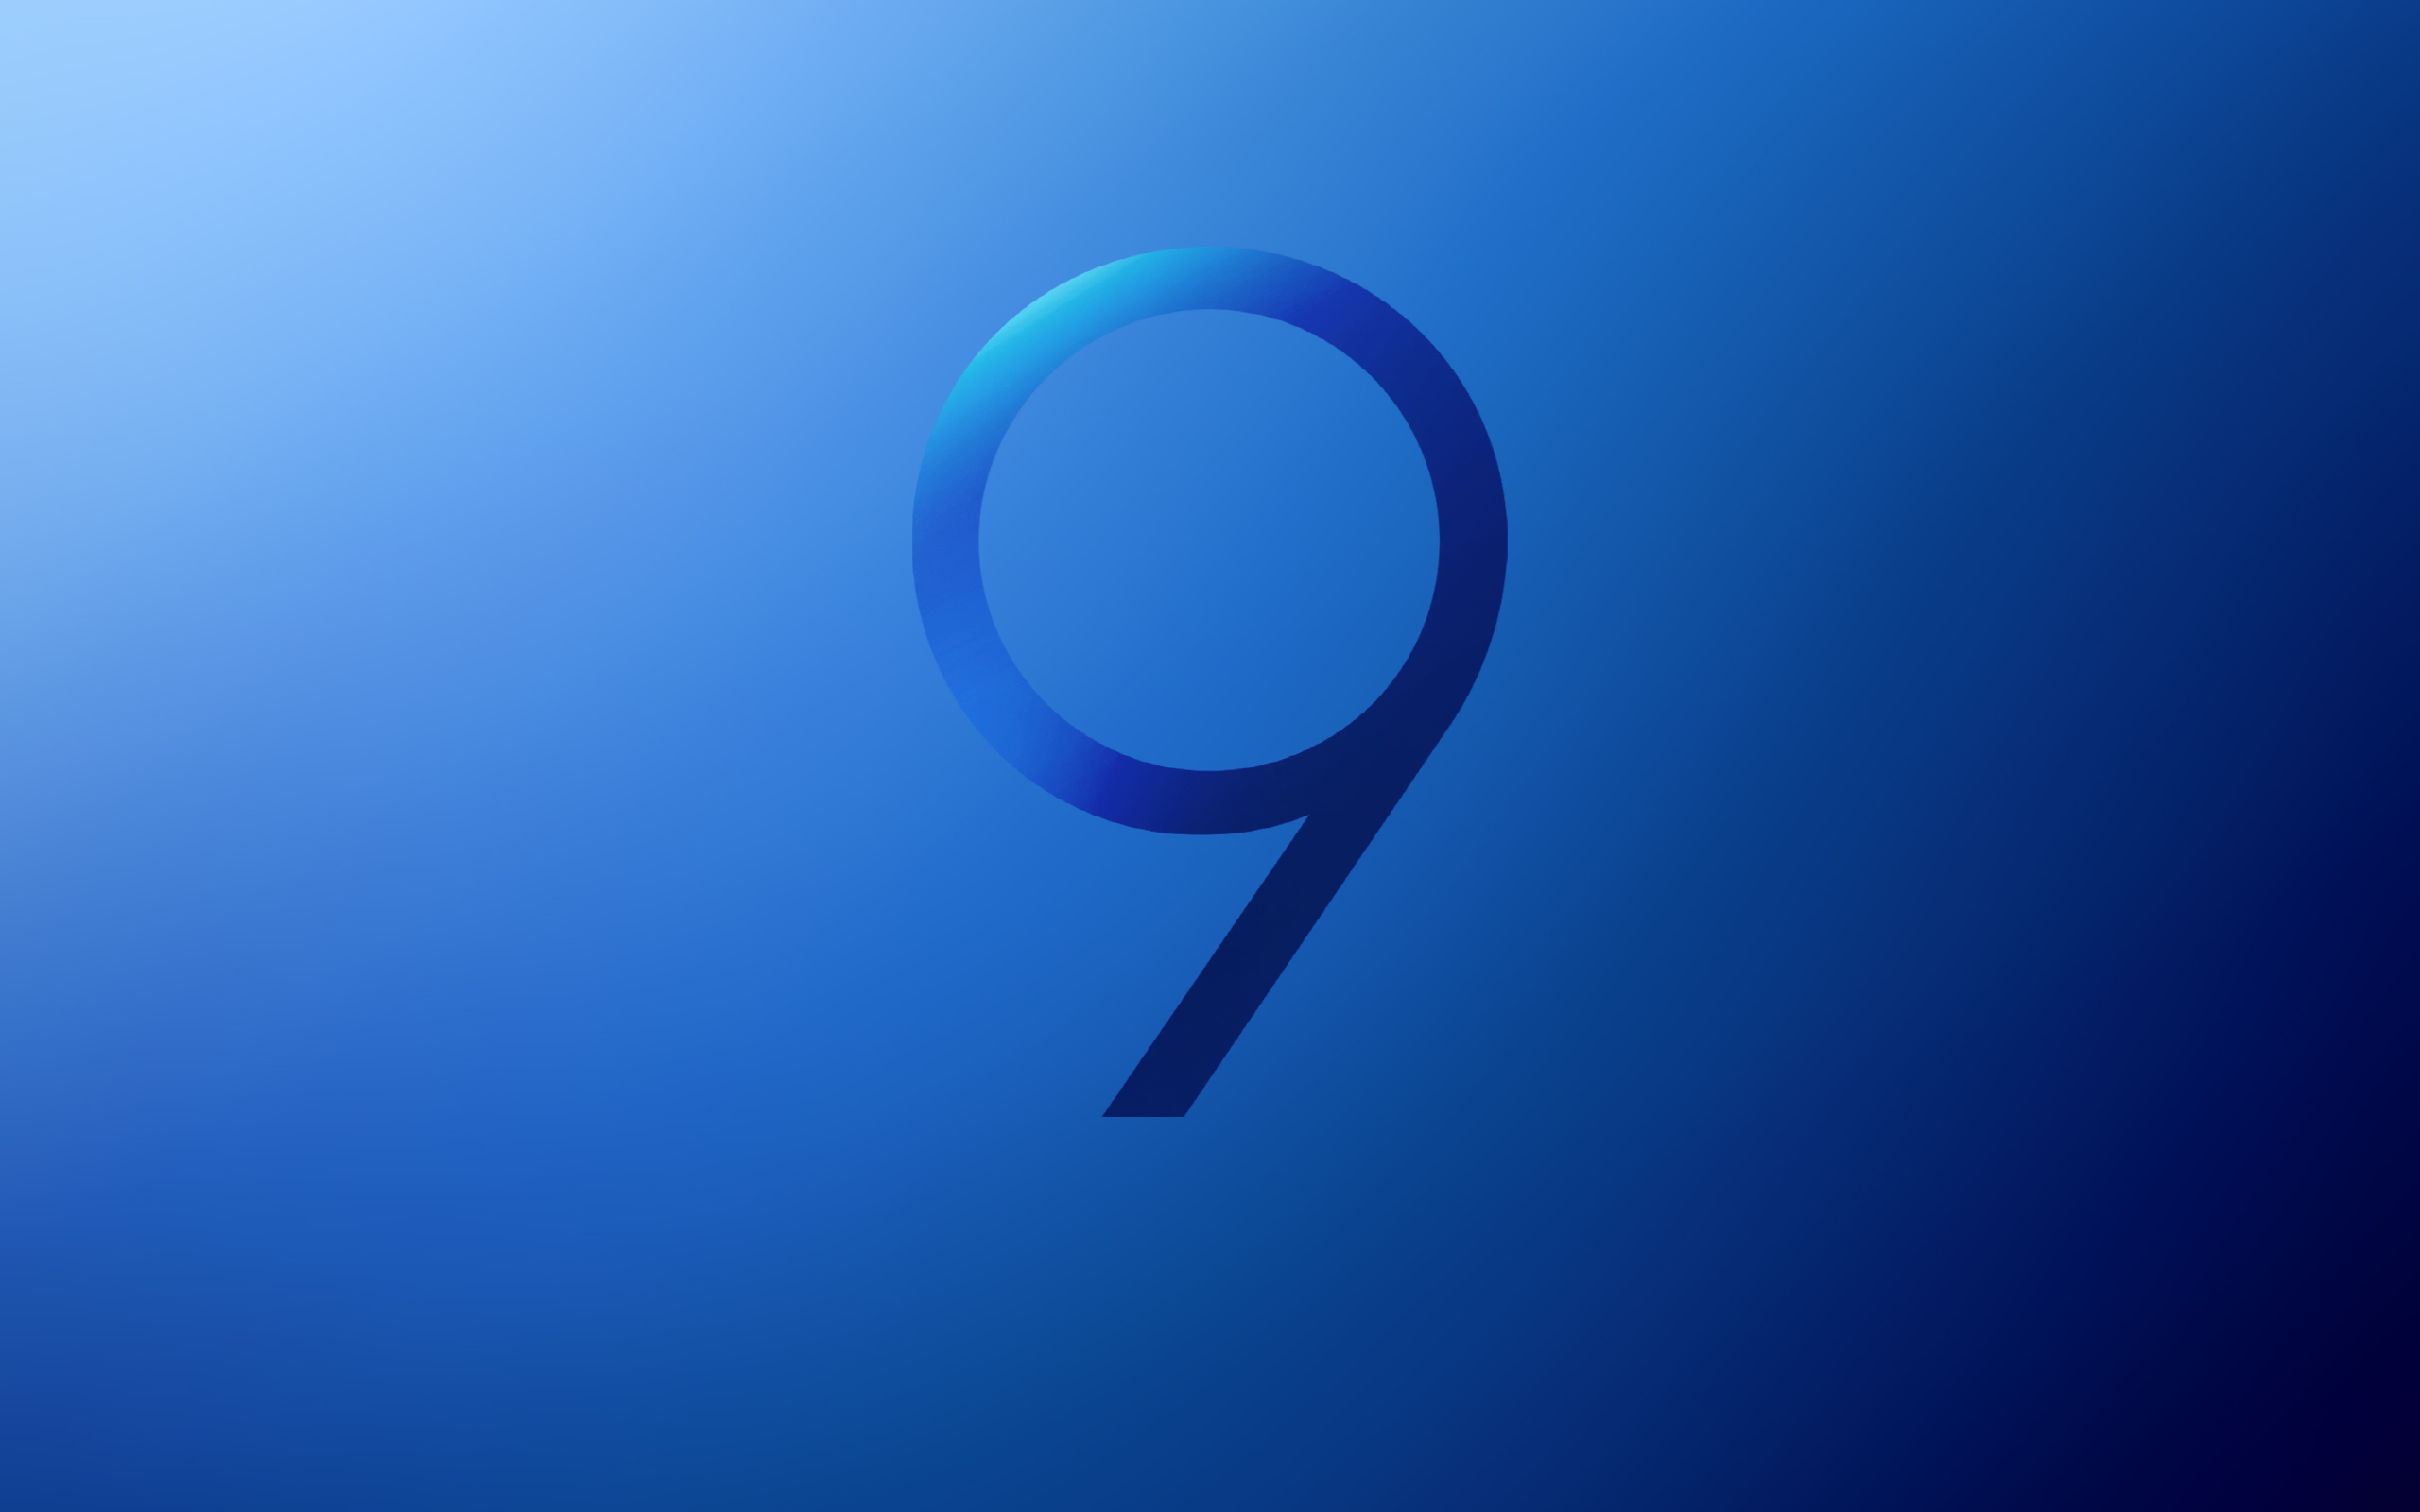 Samsung Galaxy S9 Stock Blue Wallpapers. ««